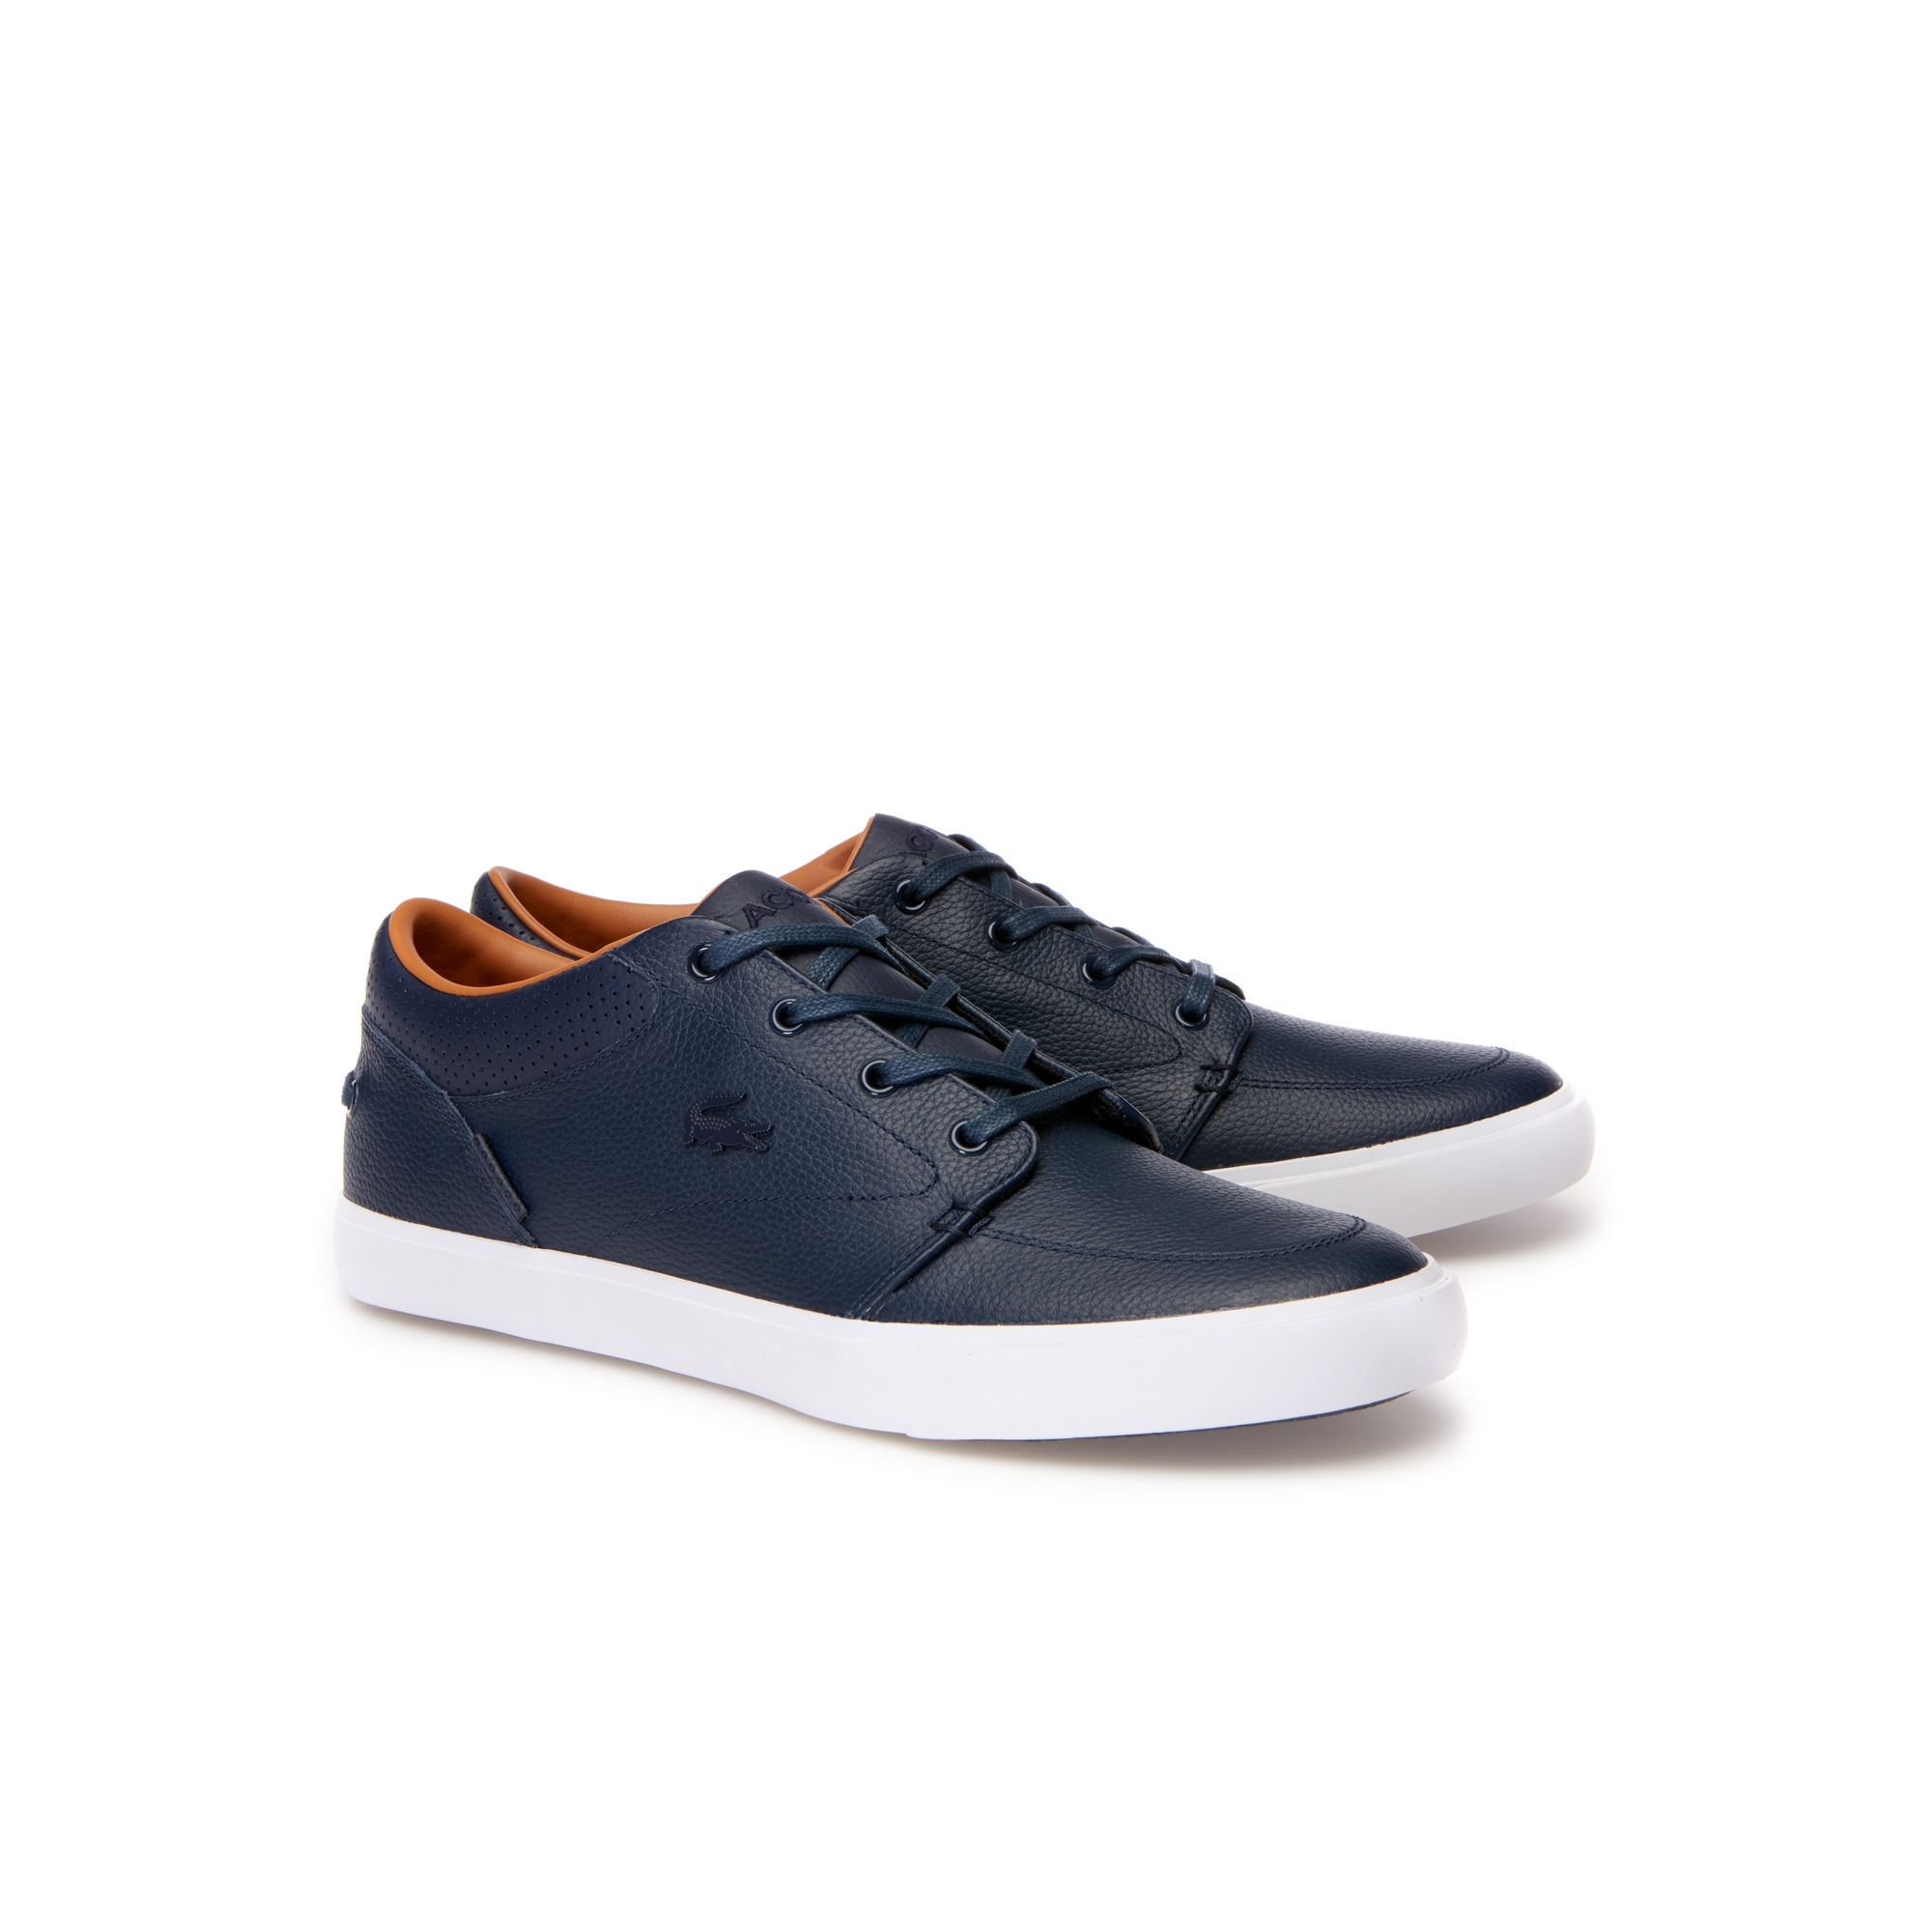 Men's Low-rise leather Bayliss VULC lace-up trainers